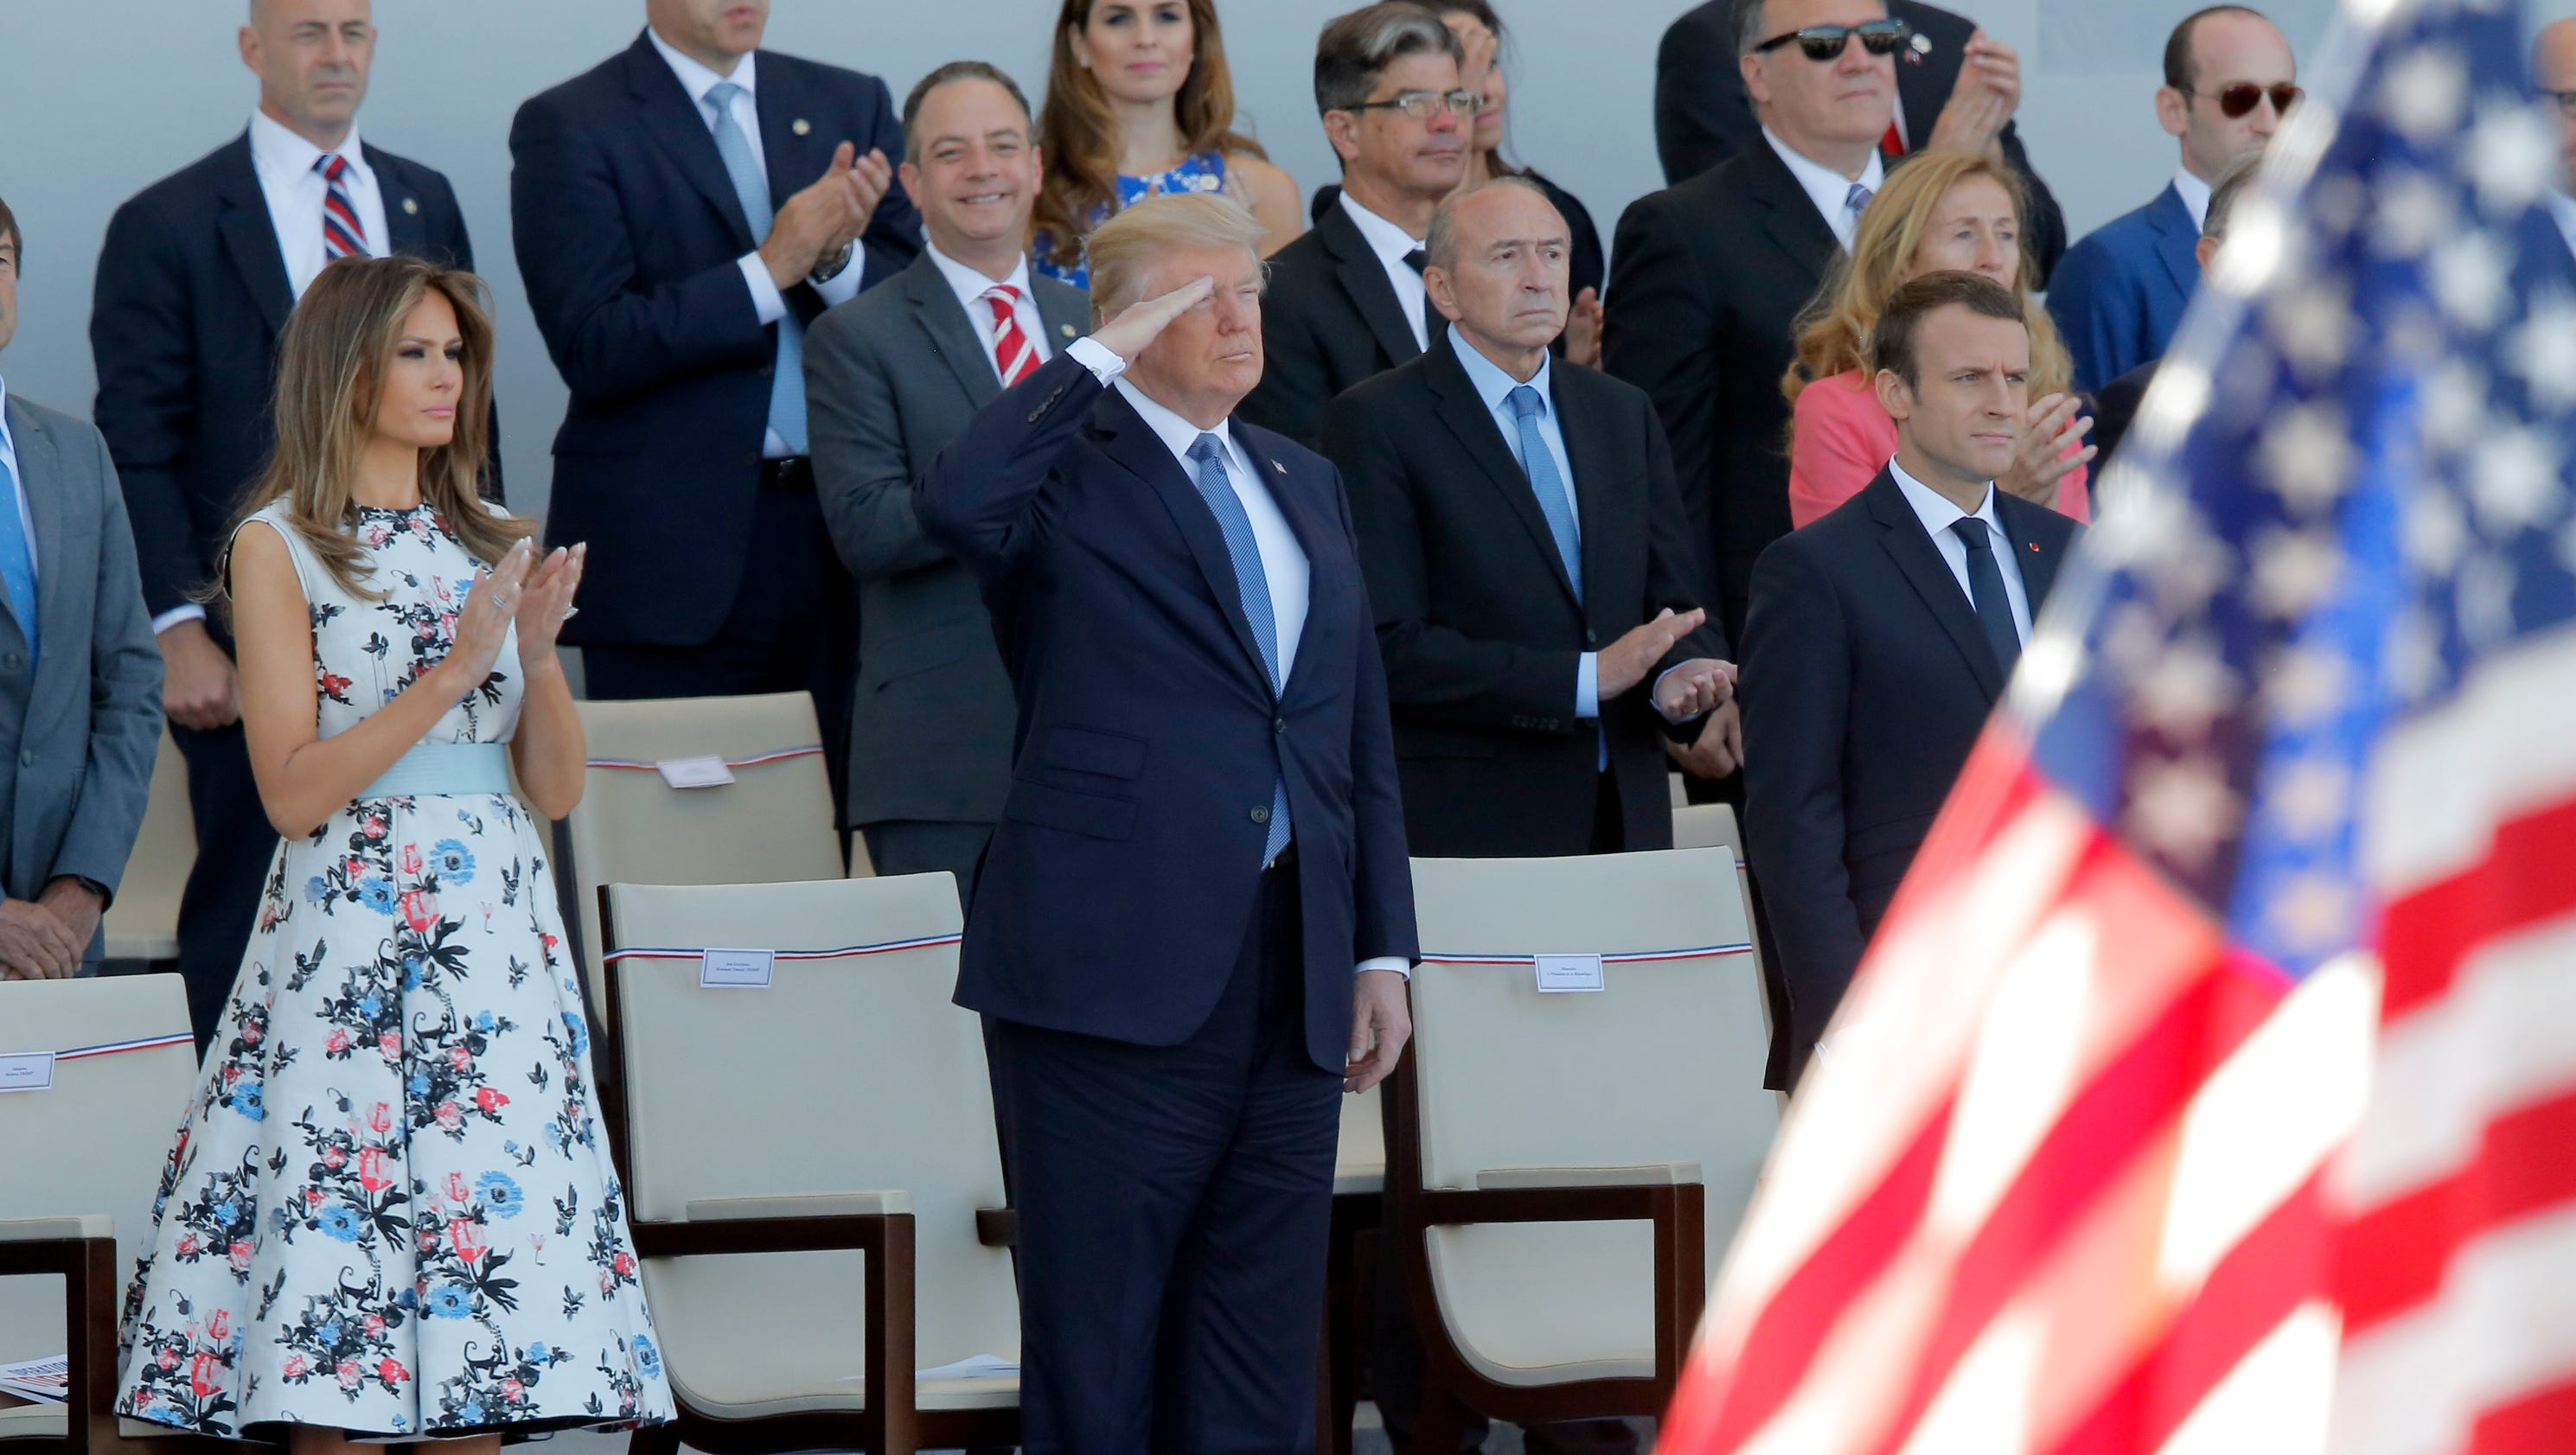 Paris puts on a dazzling Bastille Day display for President Trump